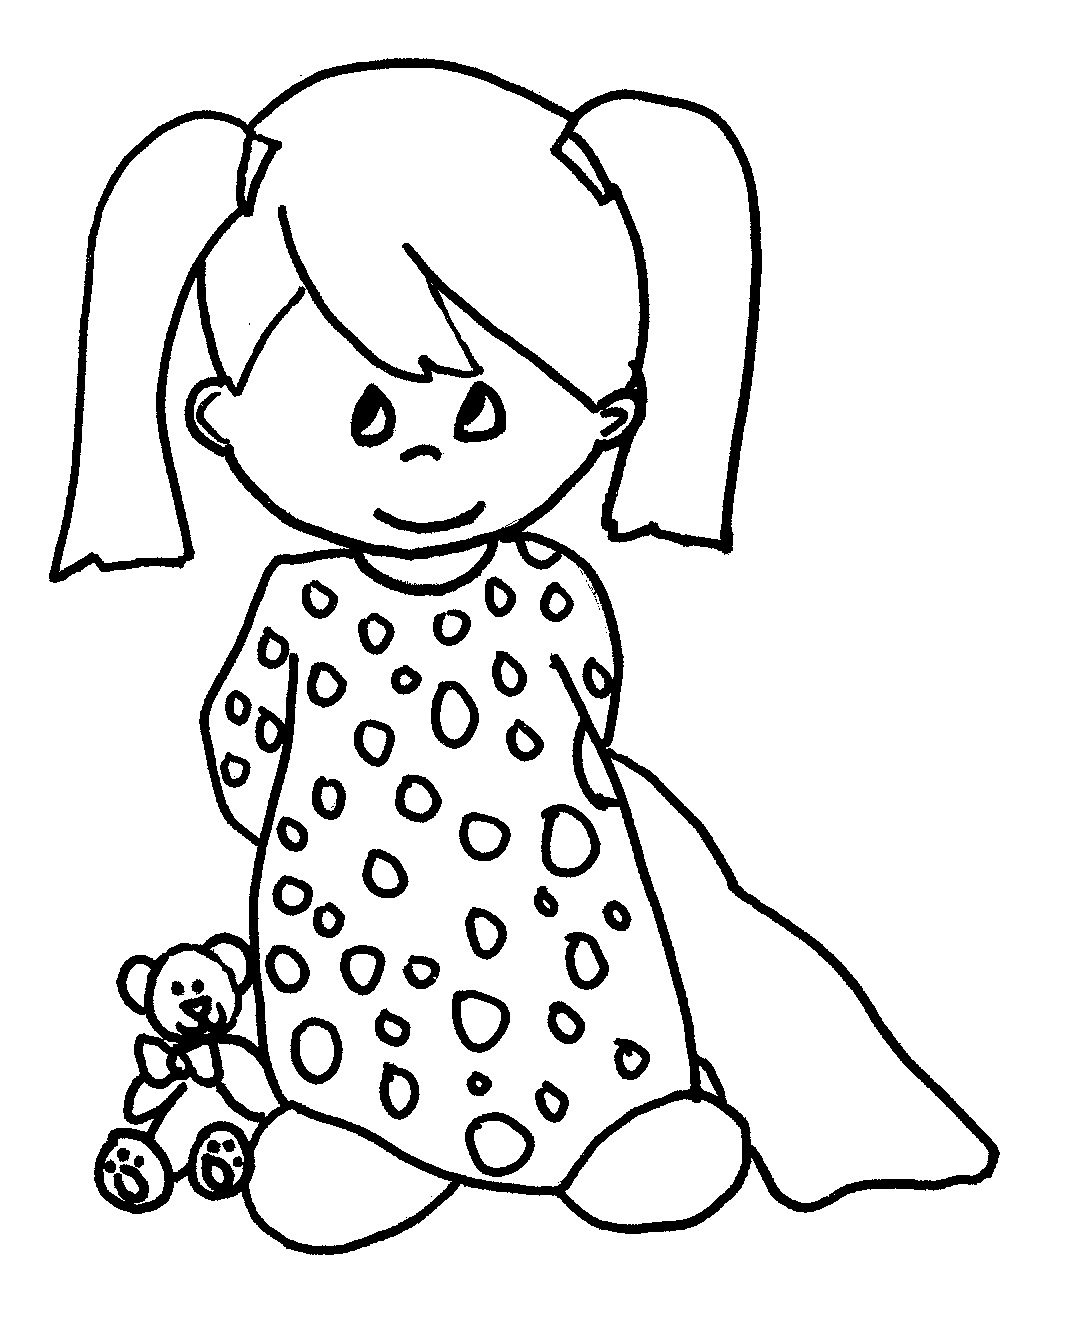 Coloring Pages For Girls: Free Printable Baby Coloring Pages For Kids